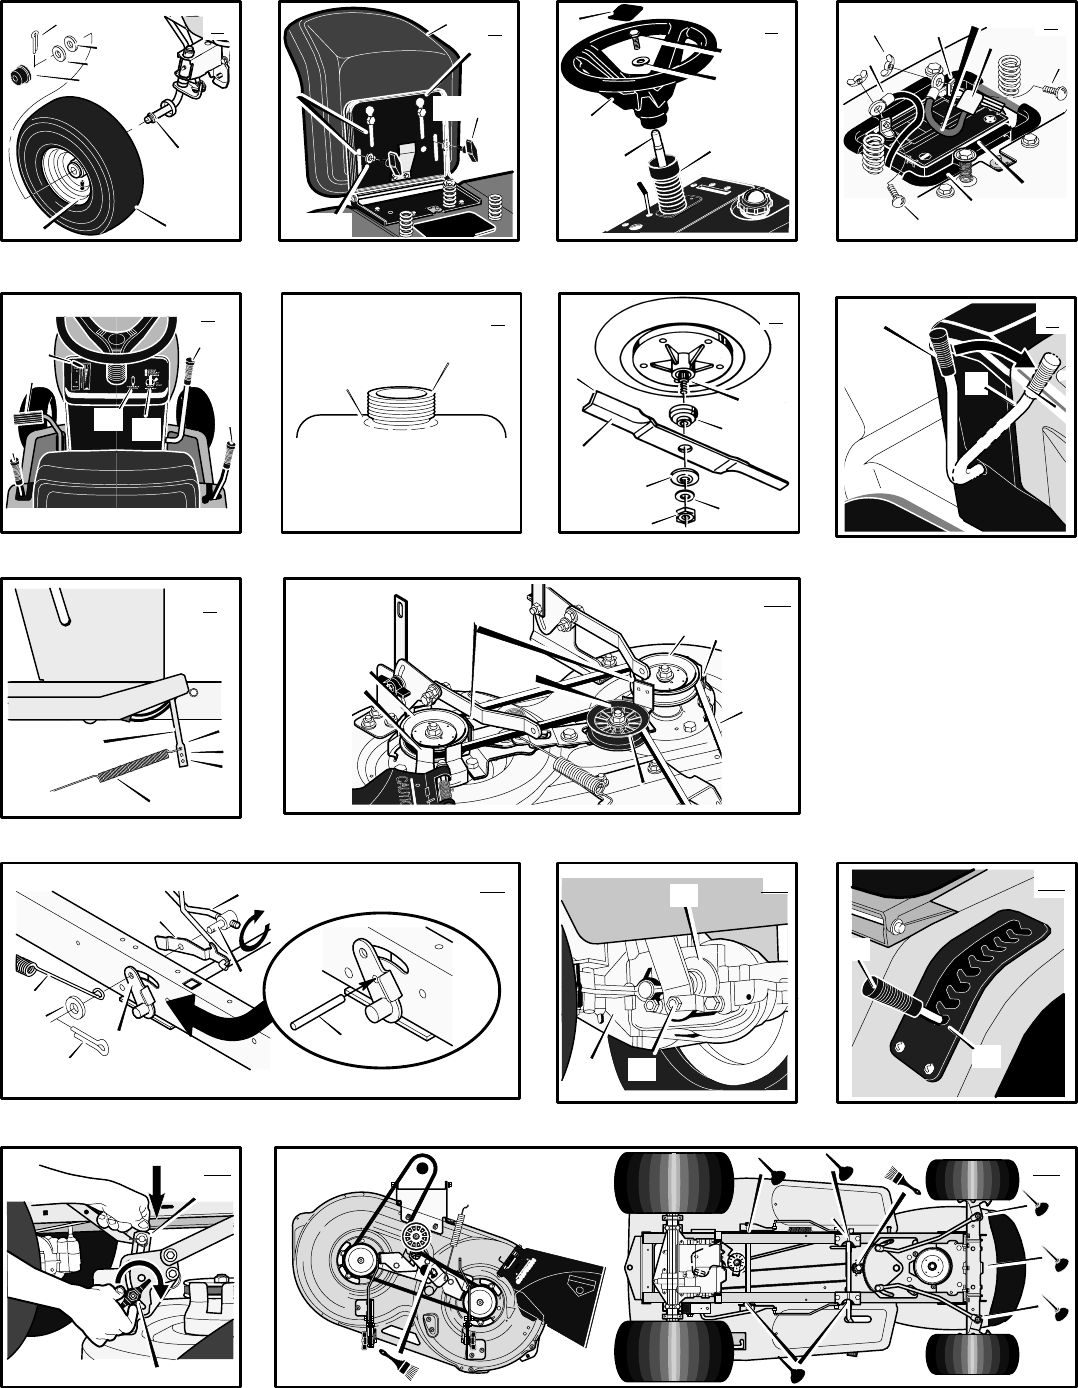 Page 2 of Murray Lawn Mower 405001x78B User Guide